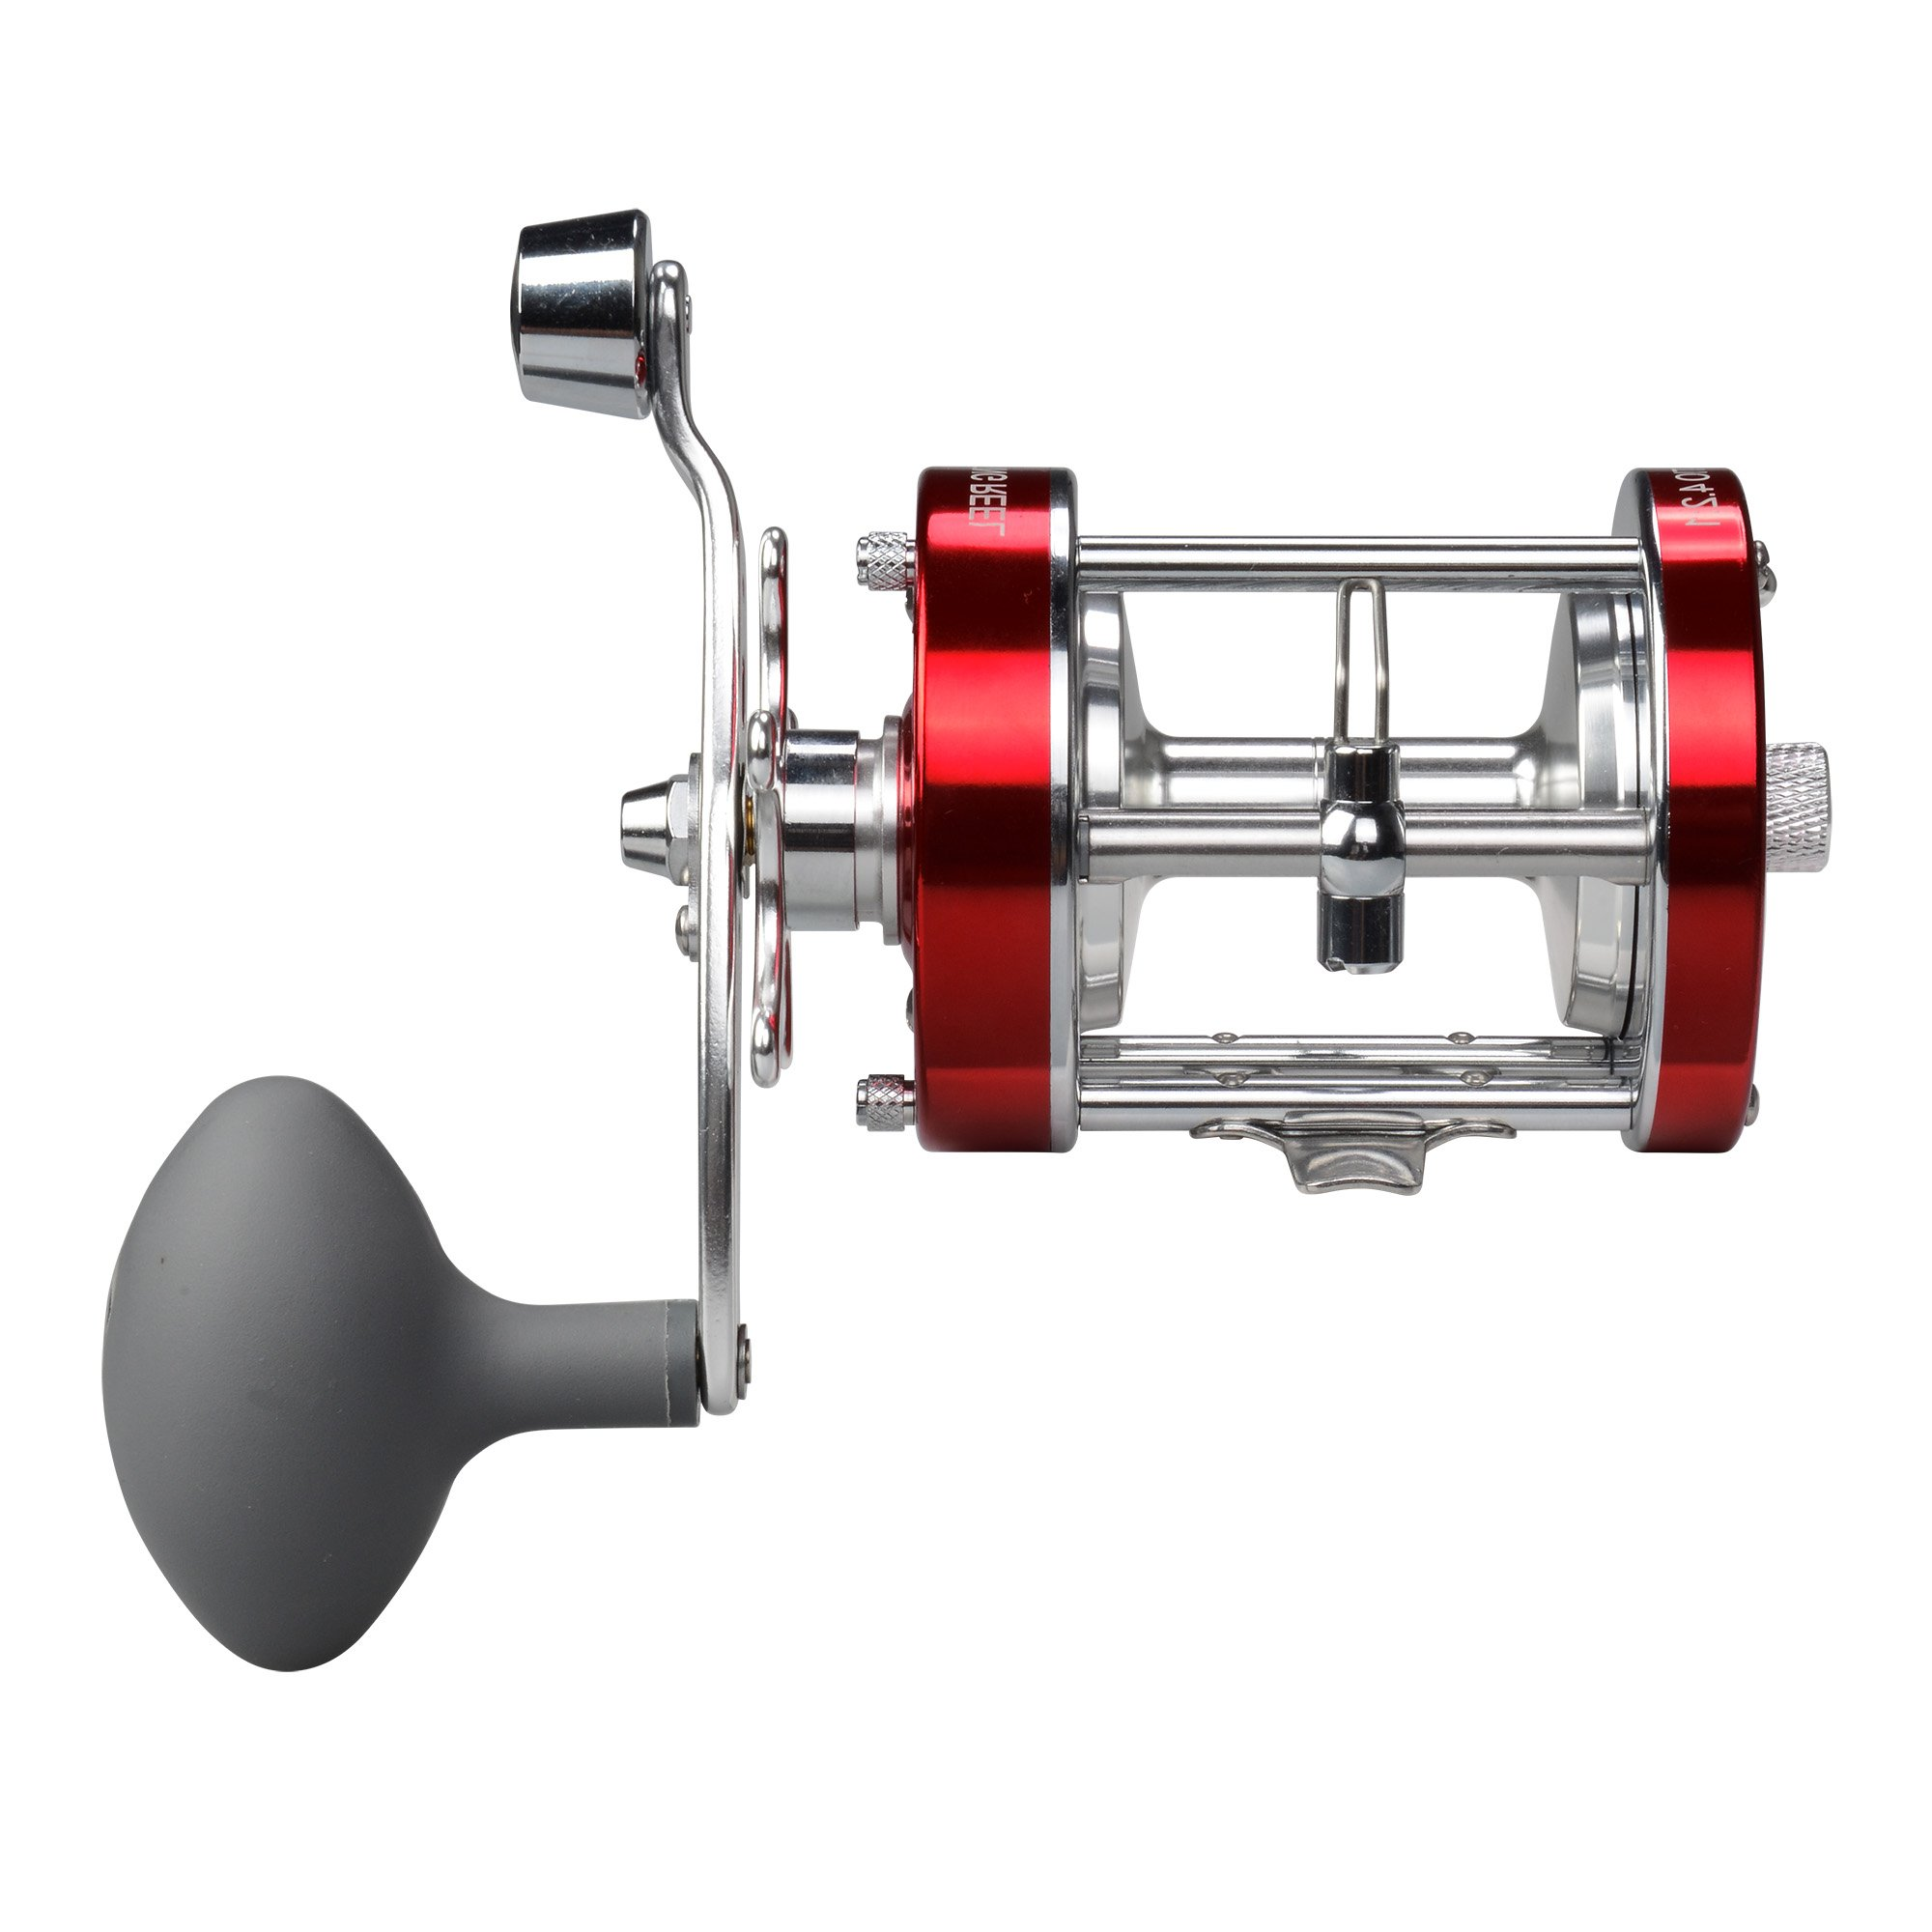 KastKing Rover Round Baitcasting Reel, Right Handed Reel,Rover80 by KastKing (Image #4)